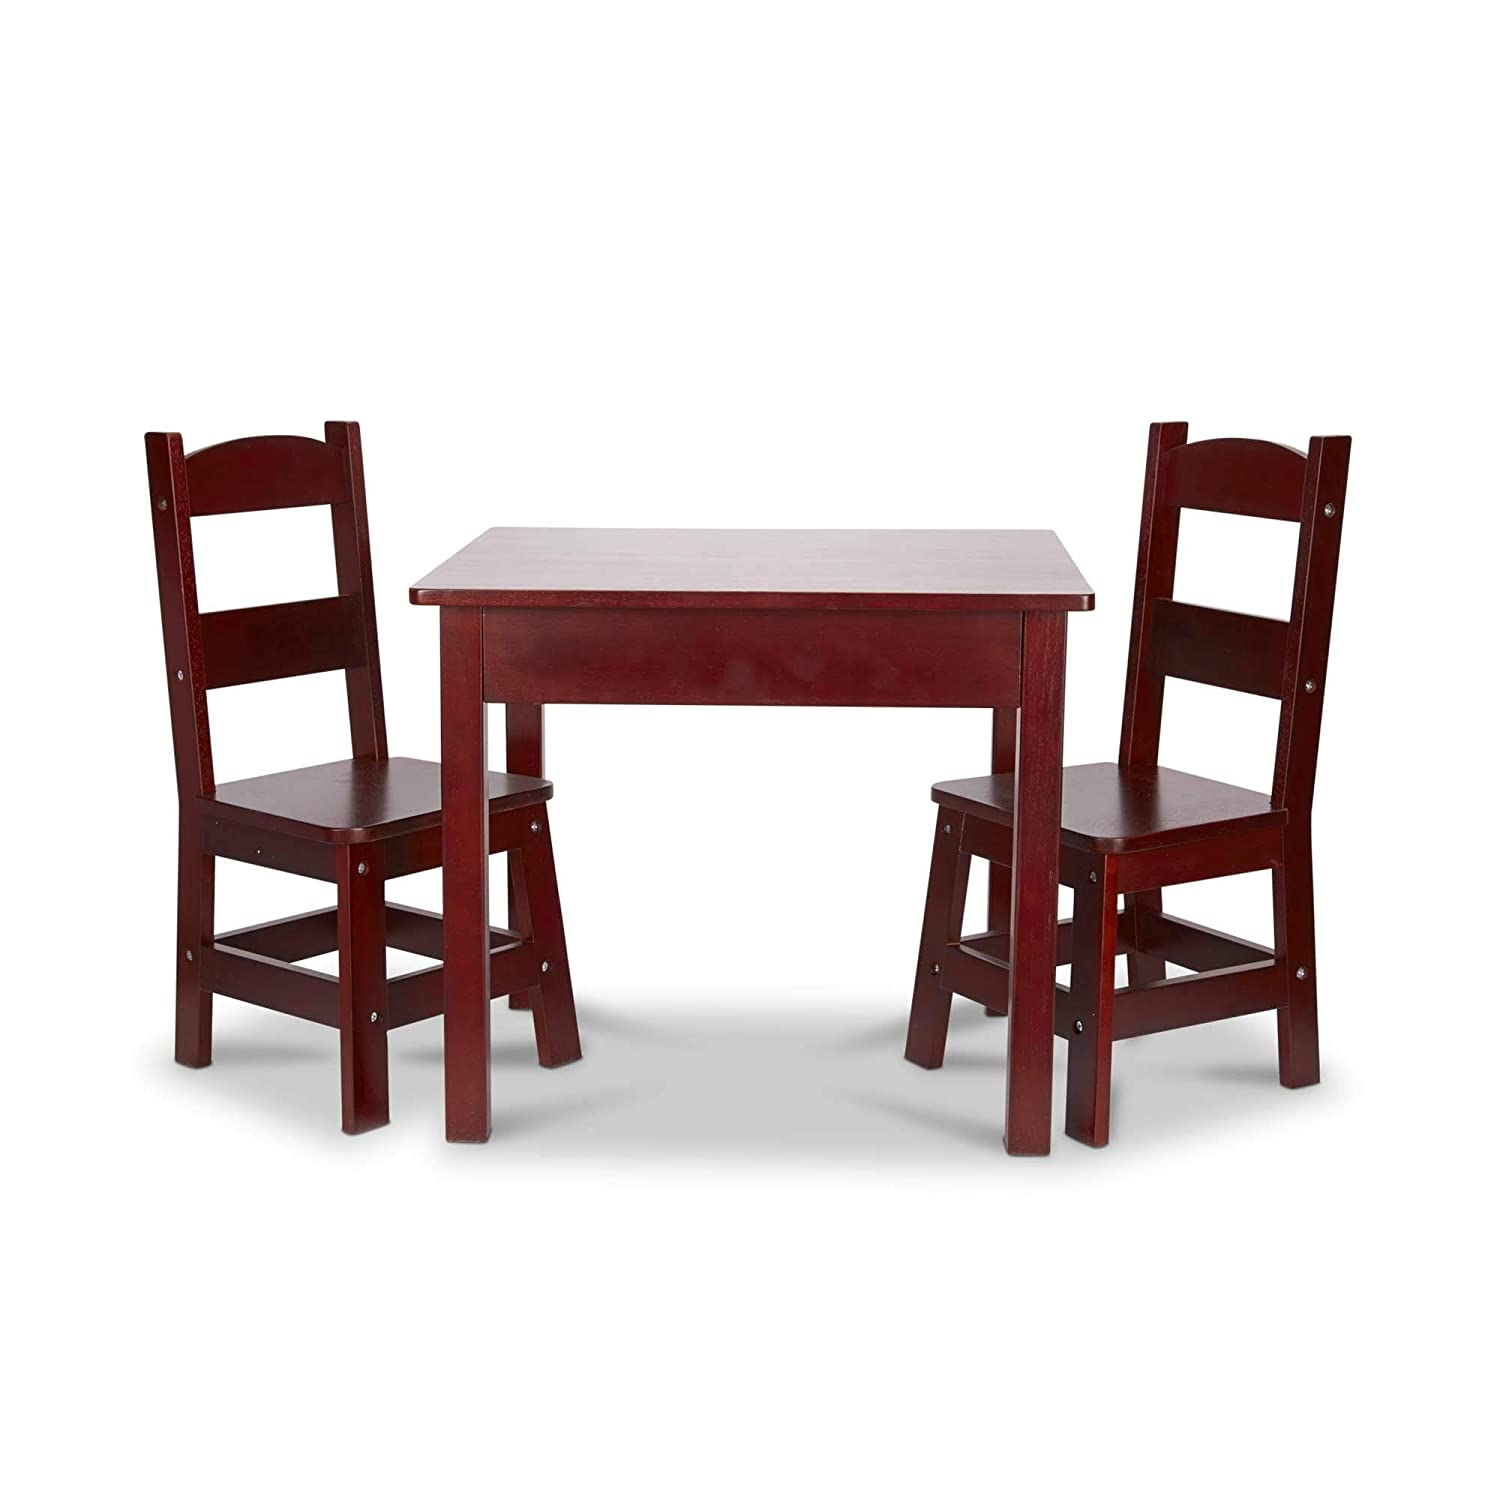 Melissa & Doug Wooden Table and Chairs Set- Espresso